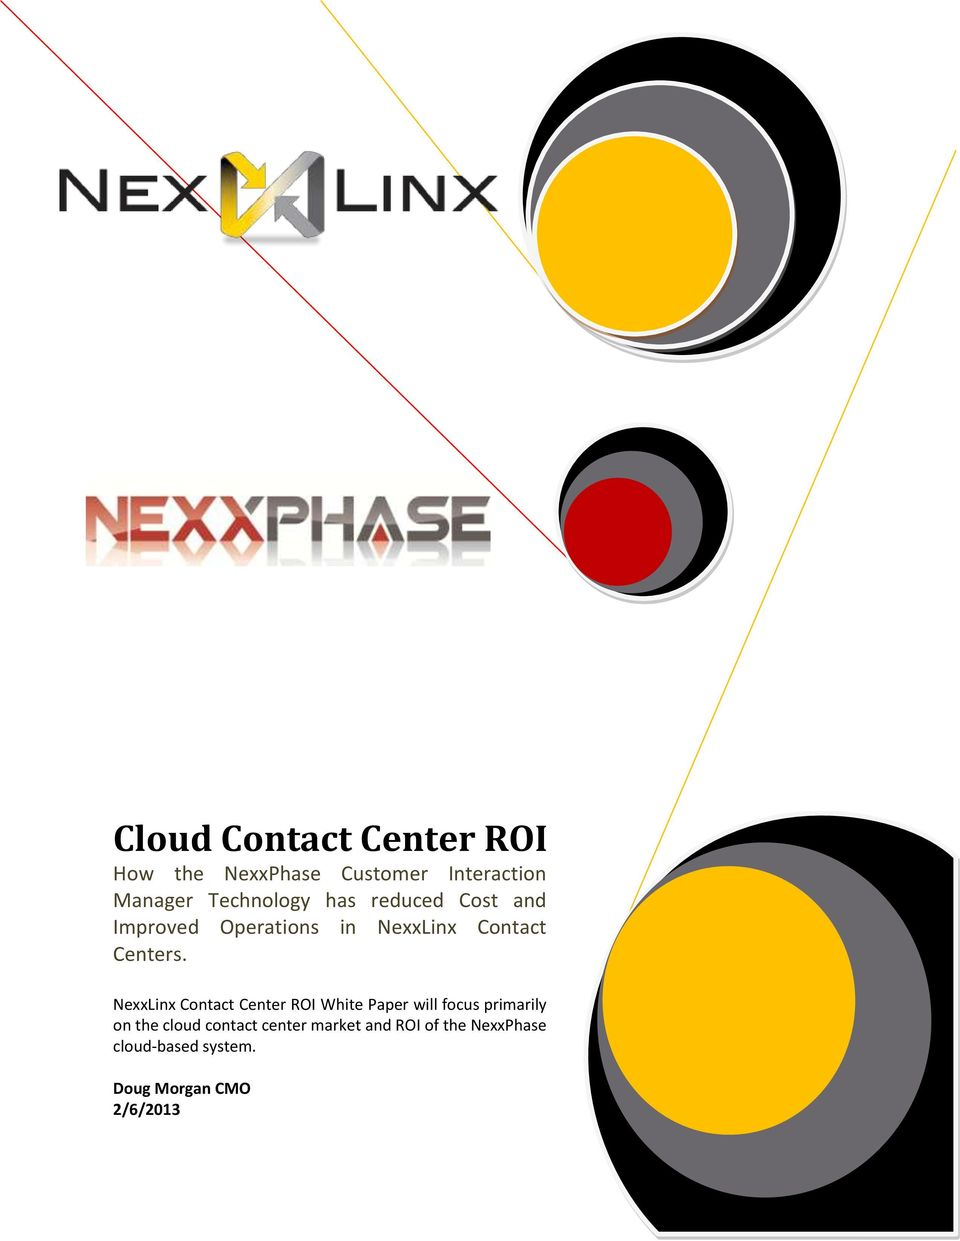 NexxLinx Contact Center ROI White Paper will focus primarily on the cloud